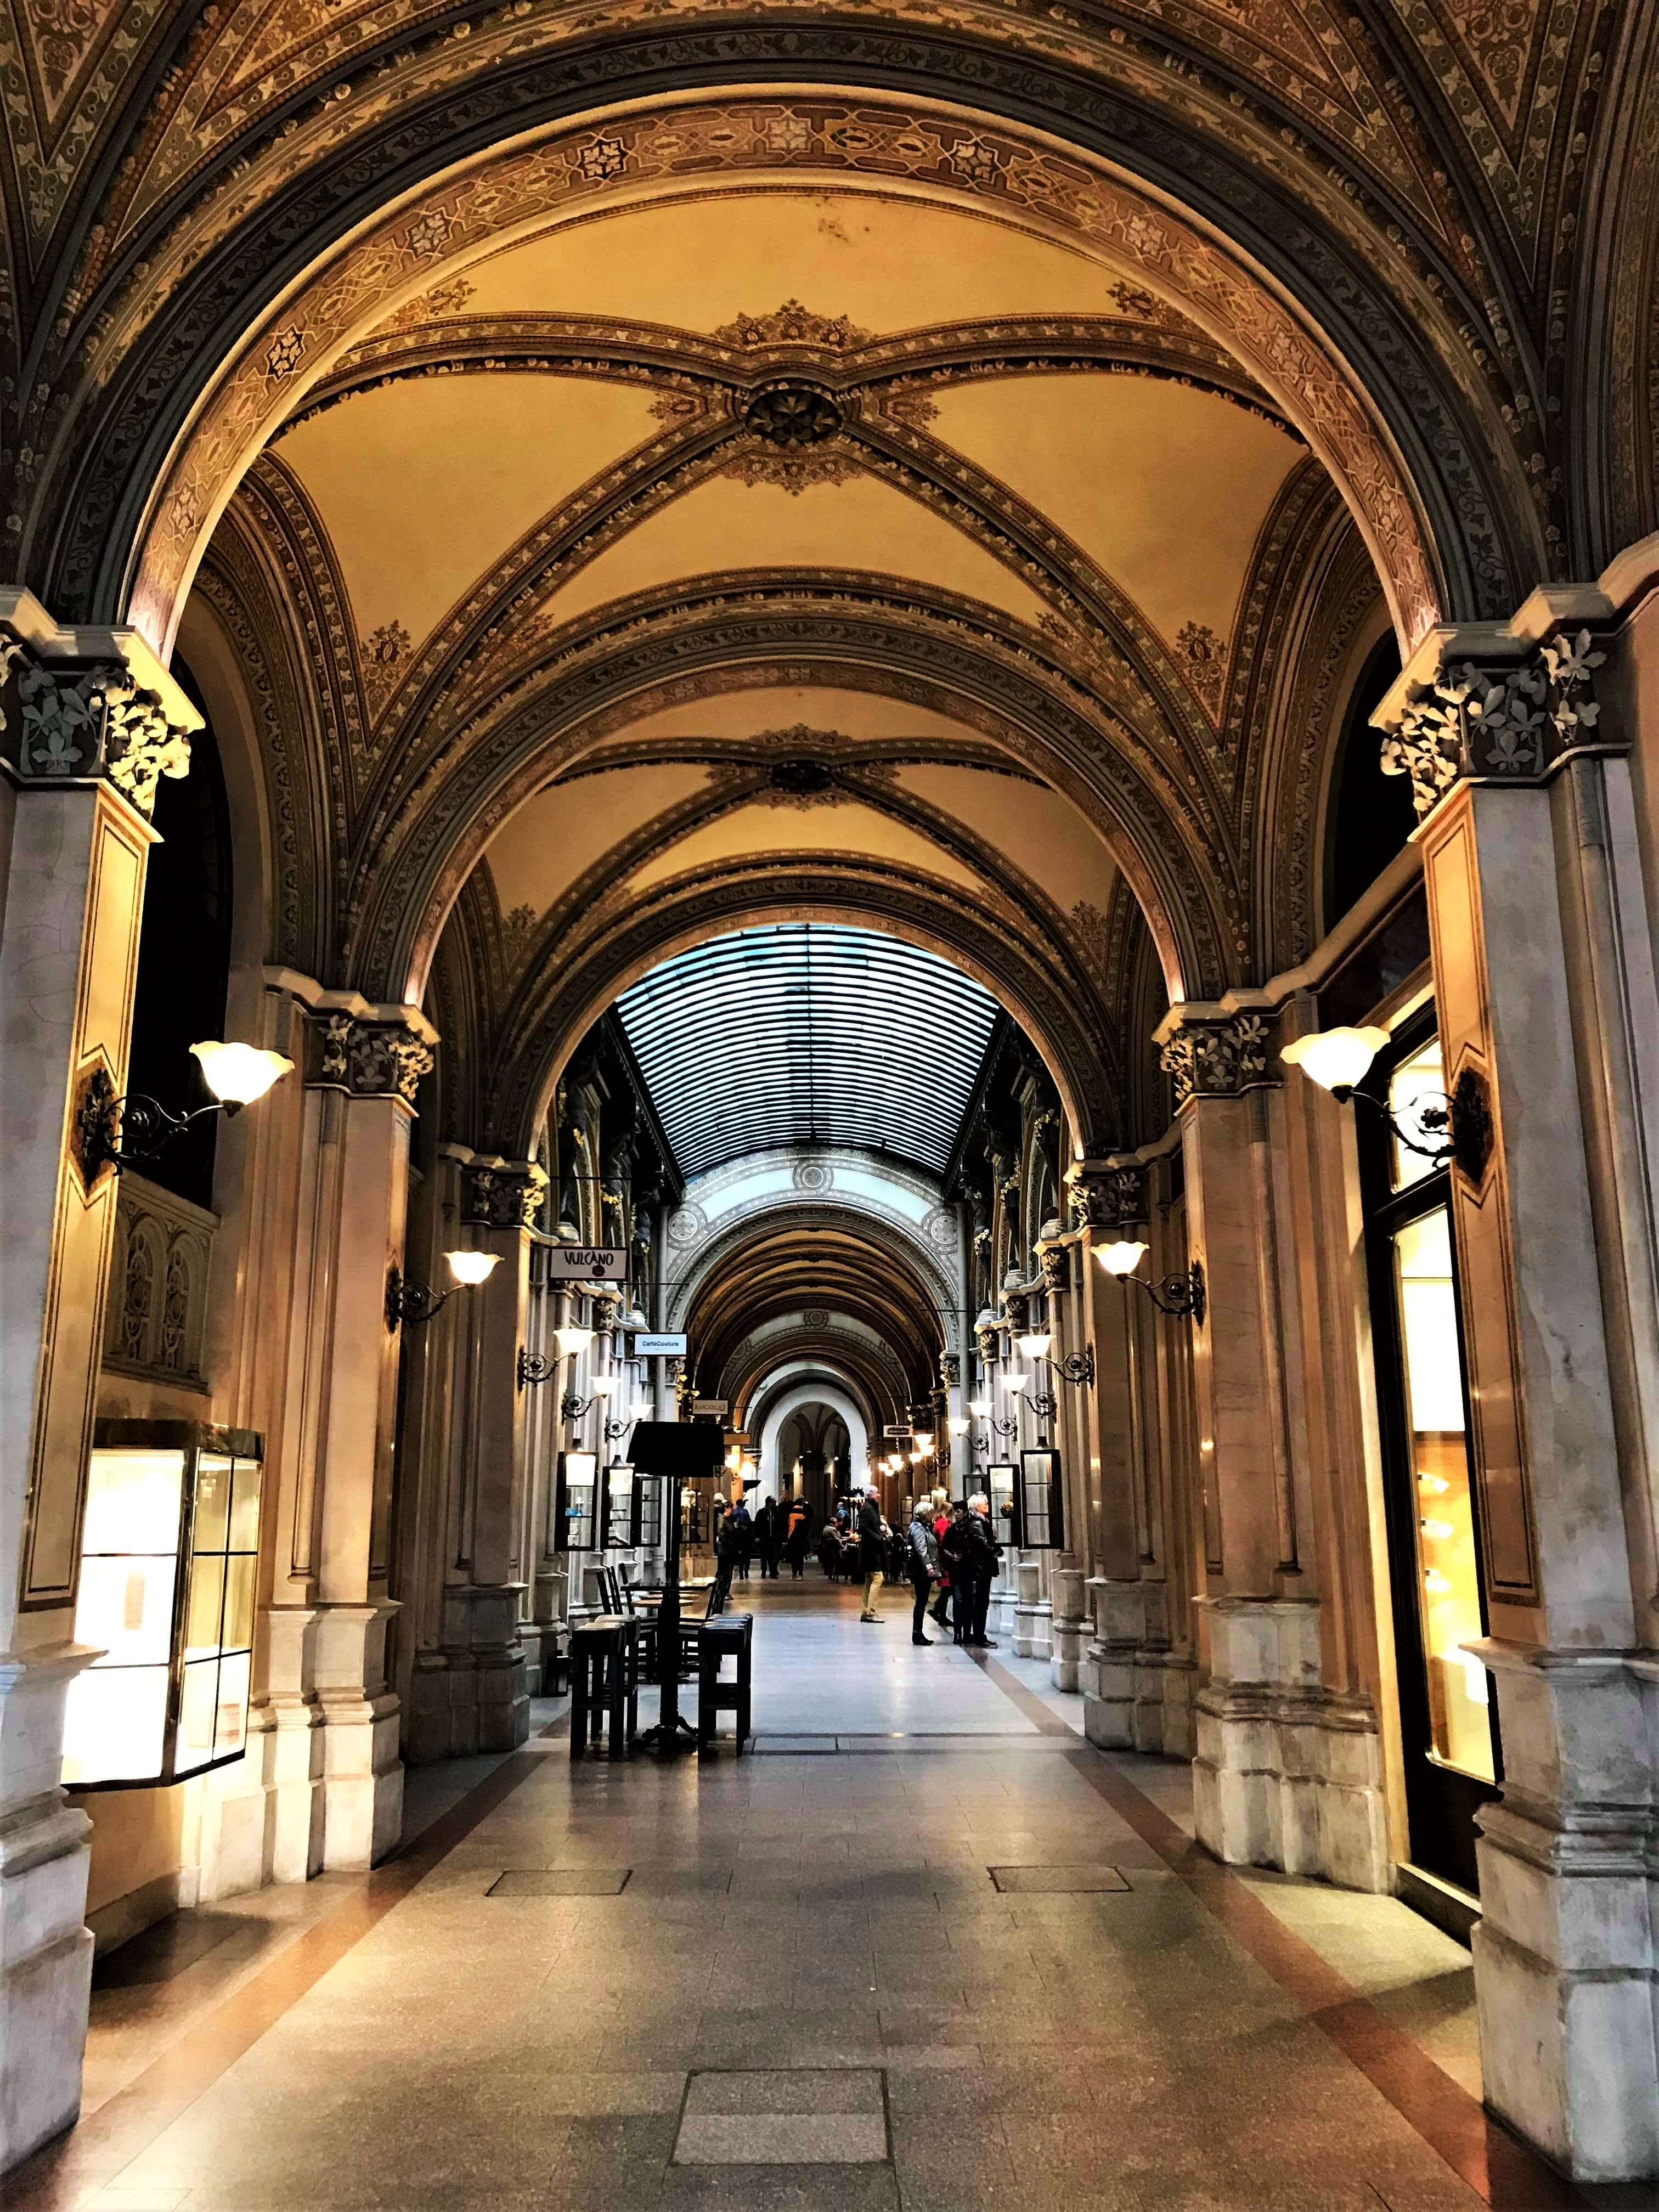 Vienna gallery passage, best places to visit in 2 days